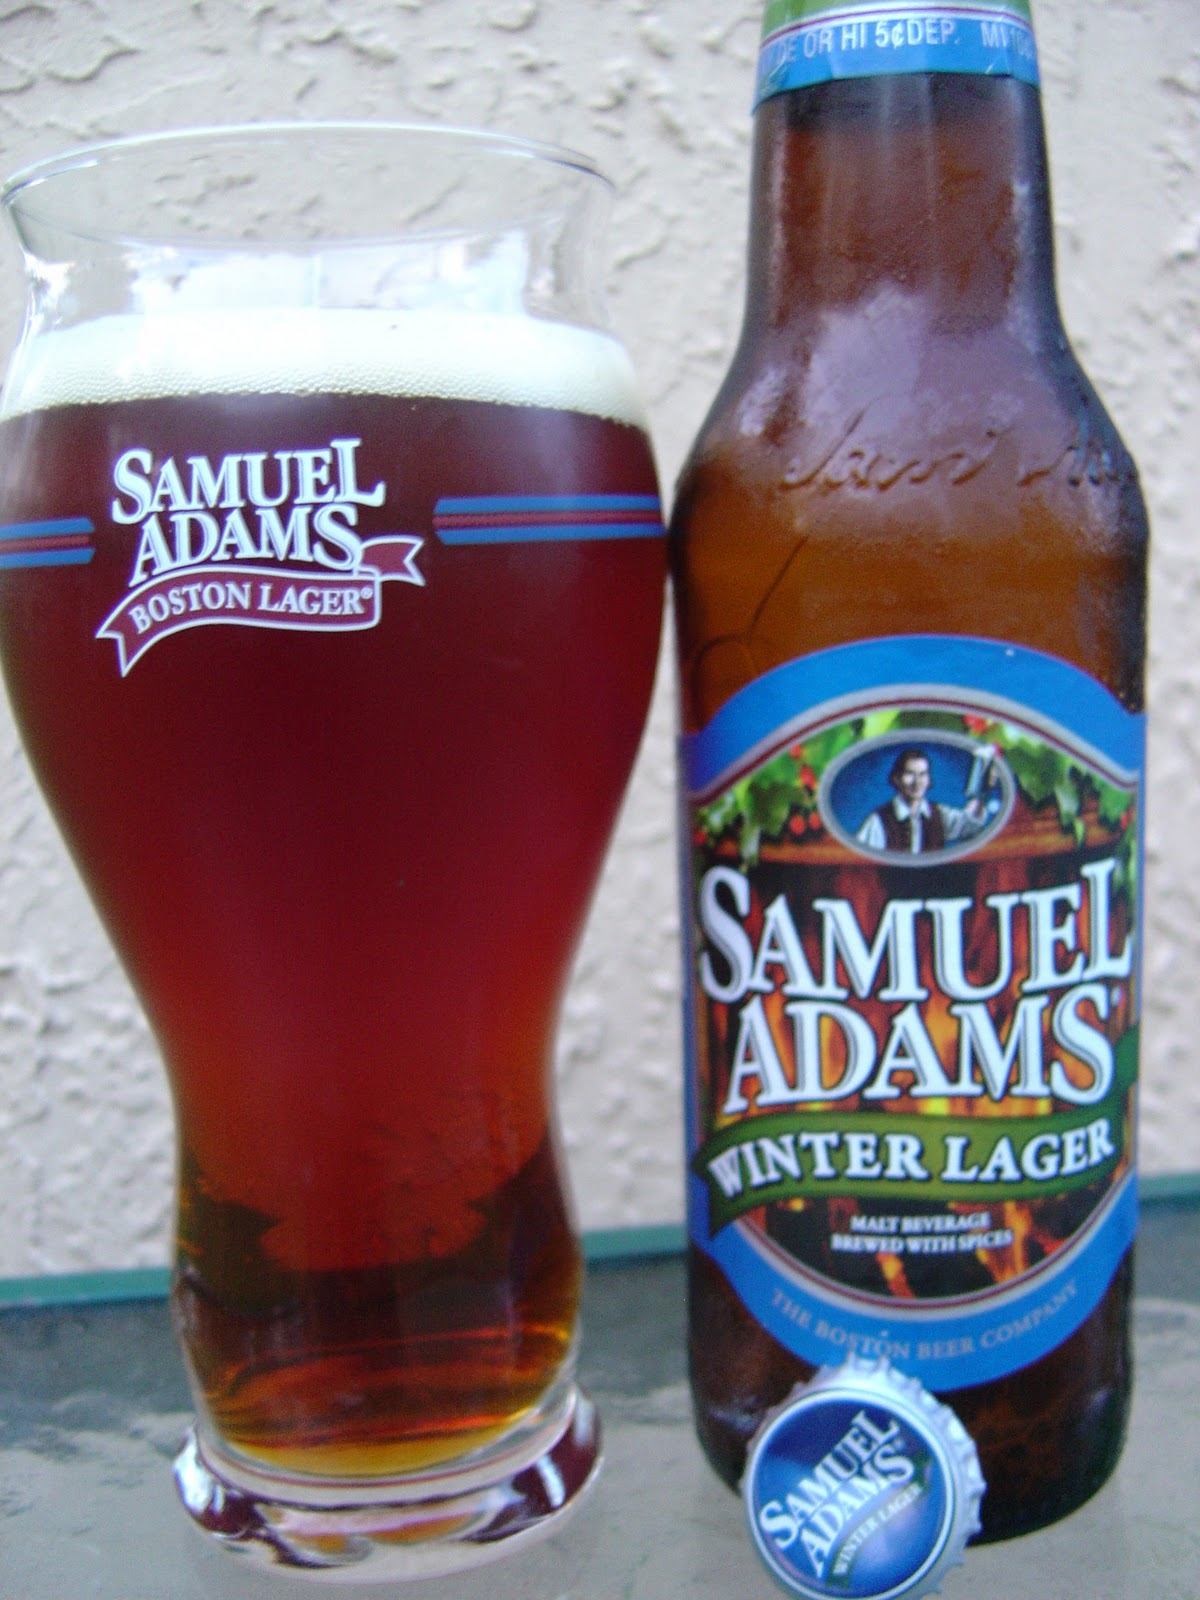 Daily Beer Review: Samuel Adams Winter Lager